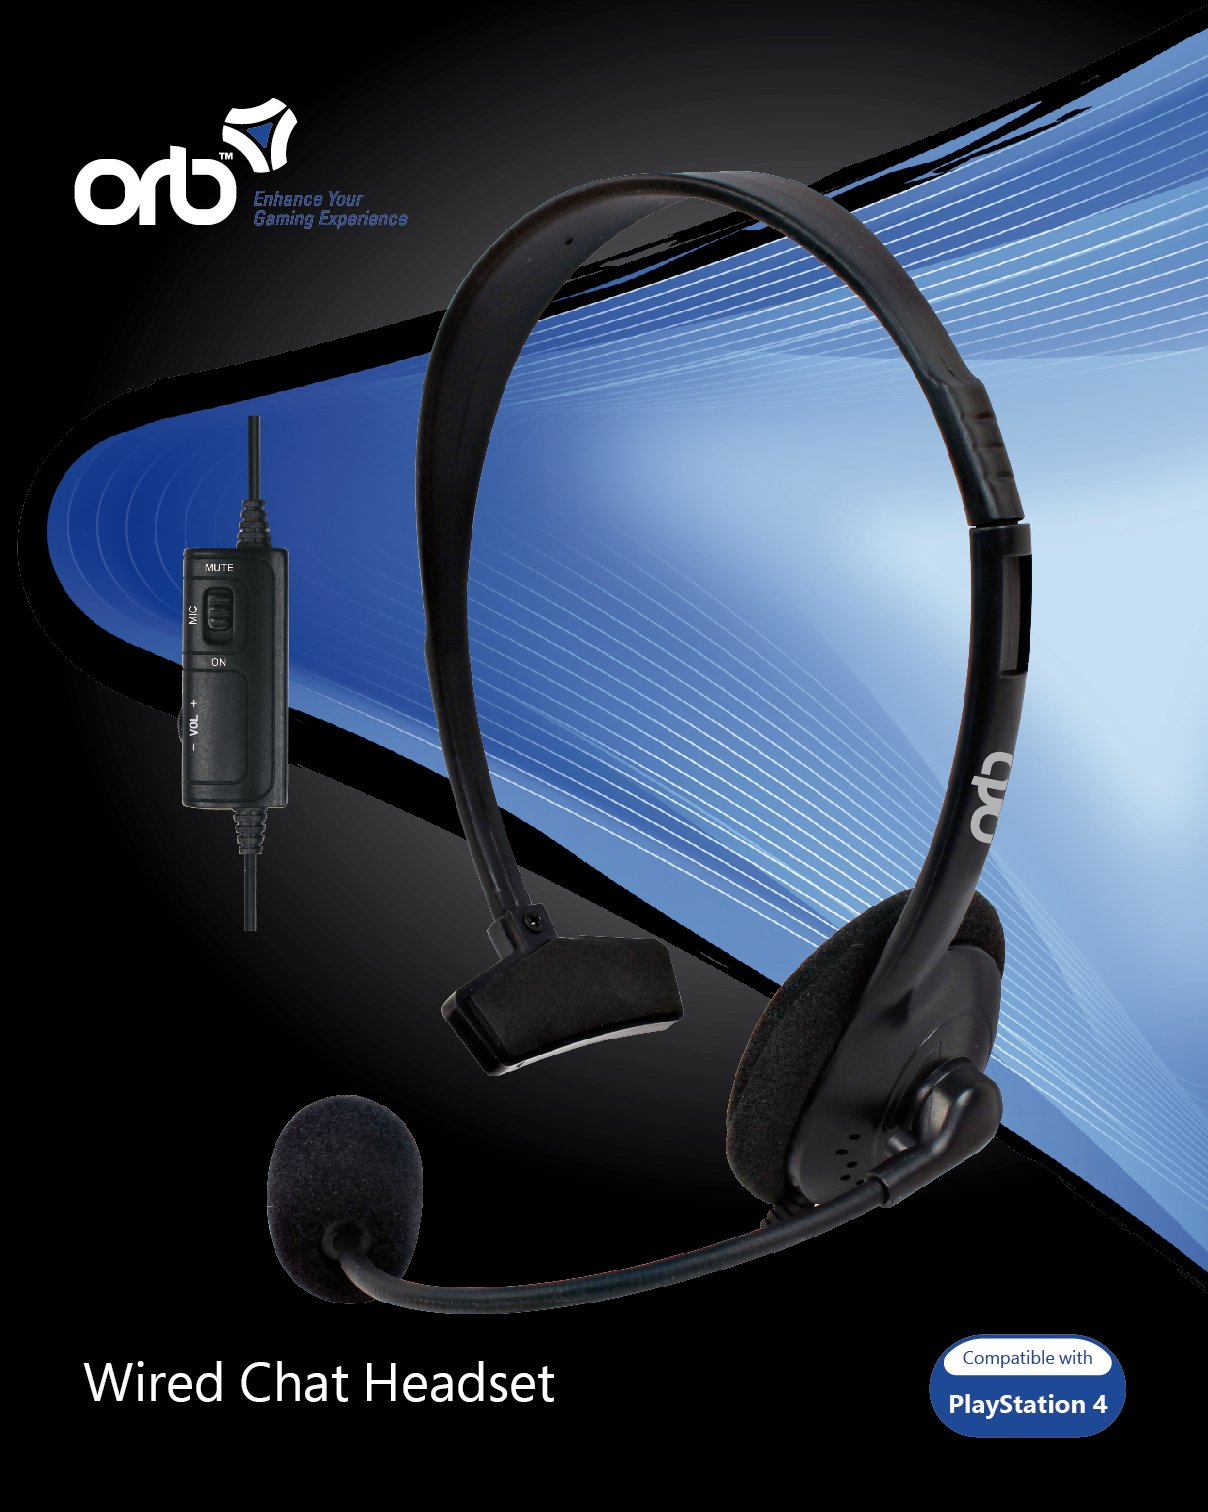 coolshop.co.uk - Playstation 4 – Wired Chat Headset (ORB)